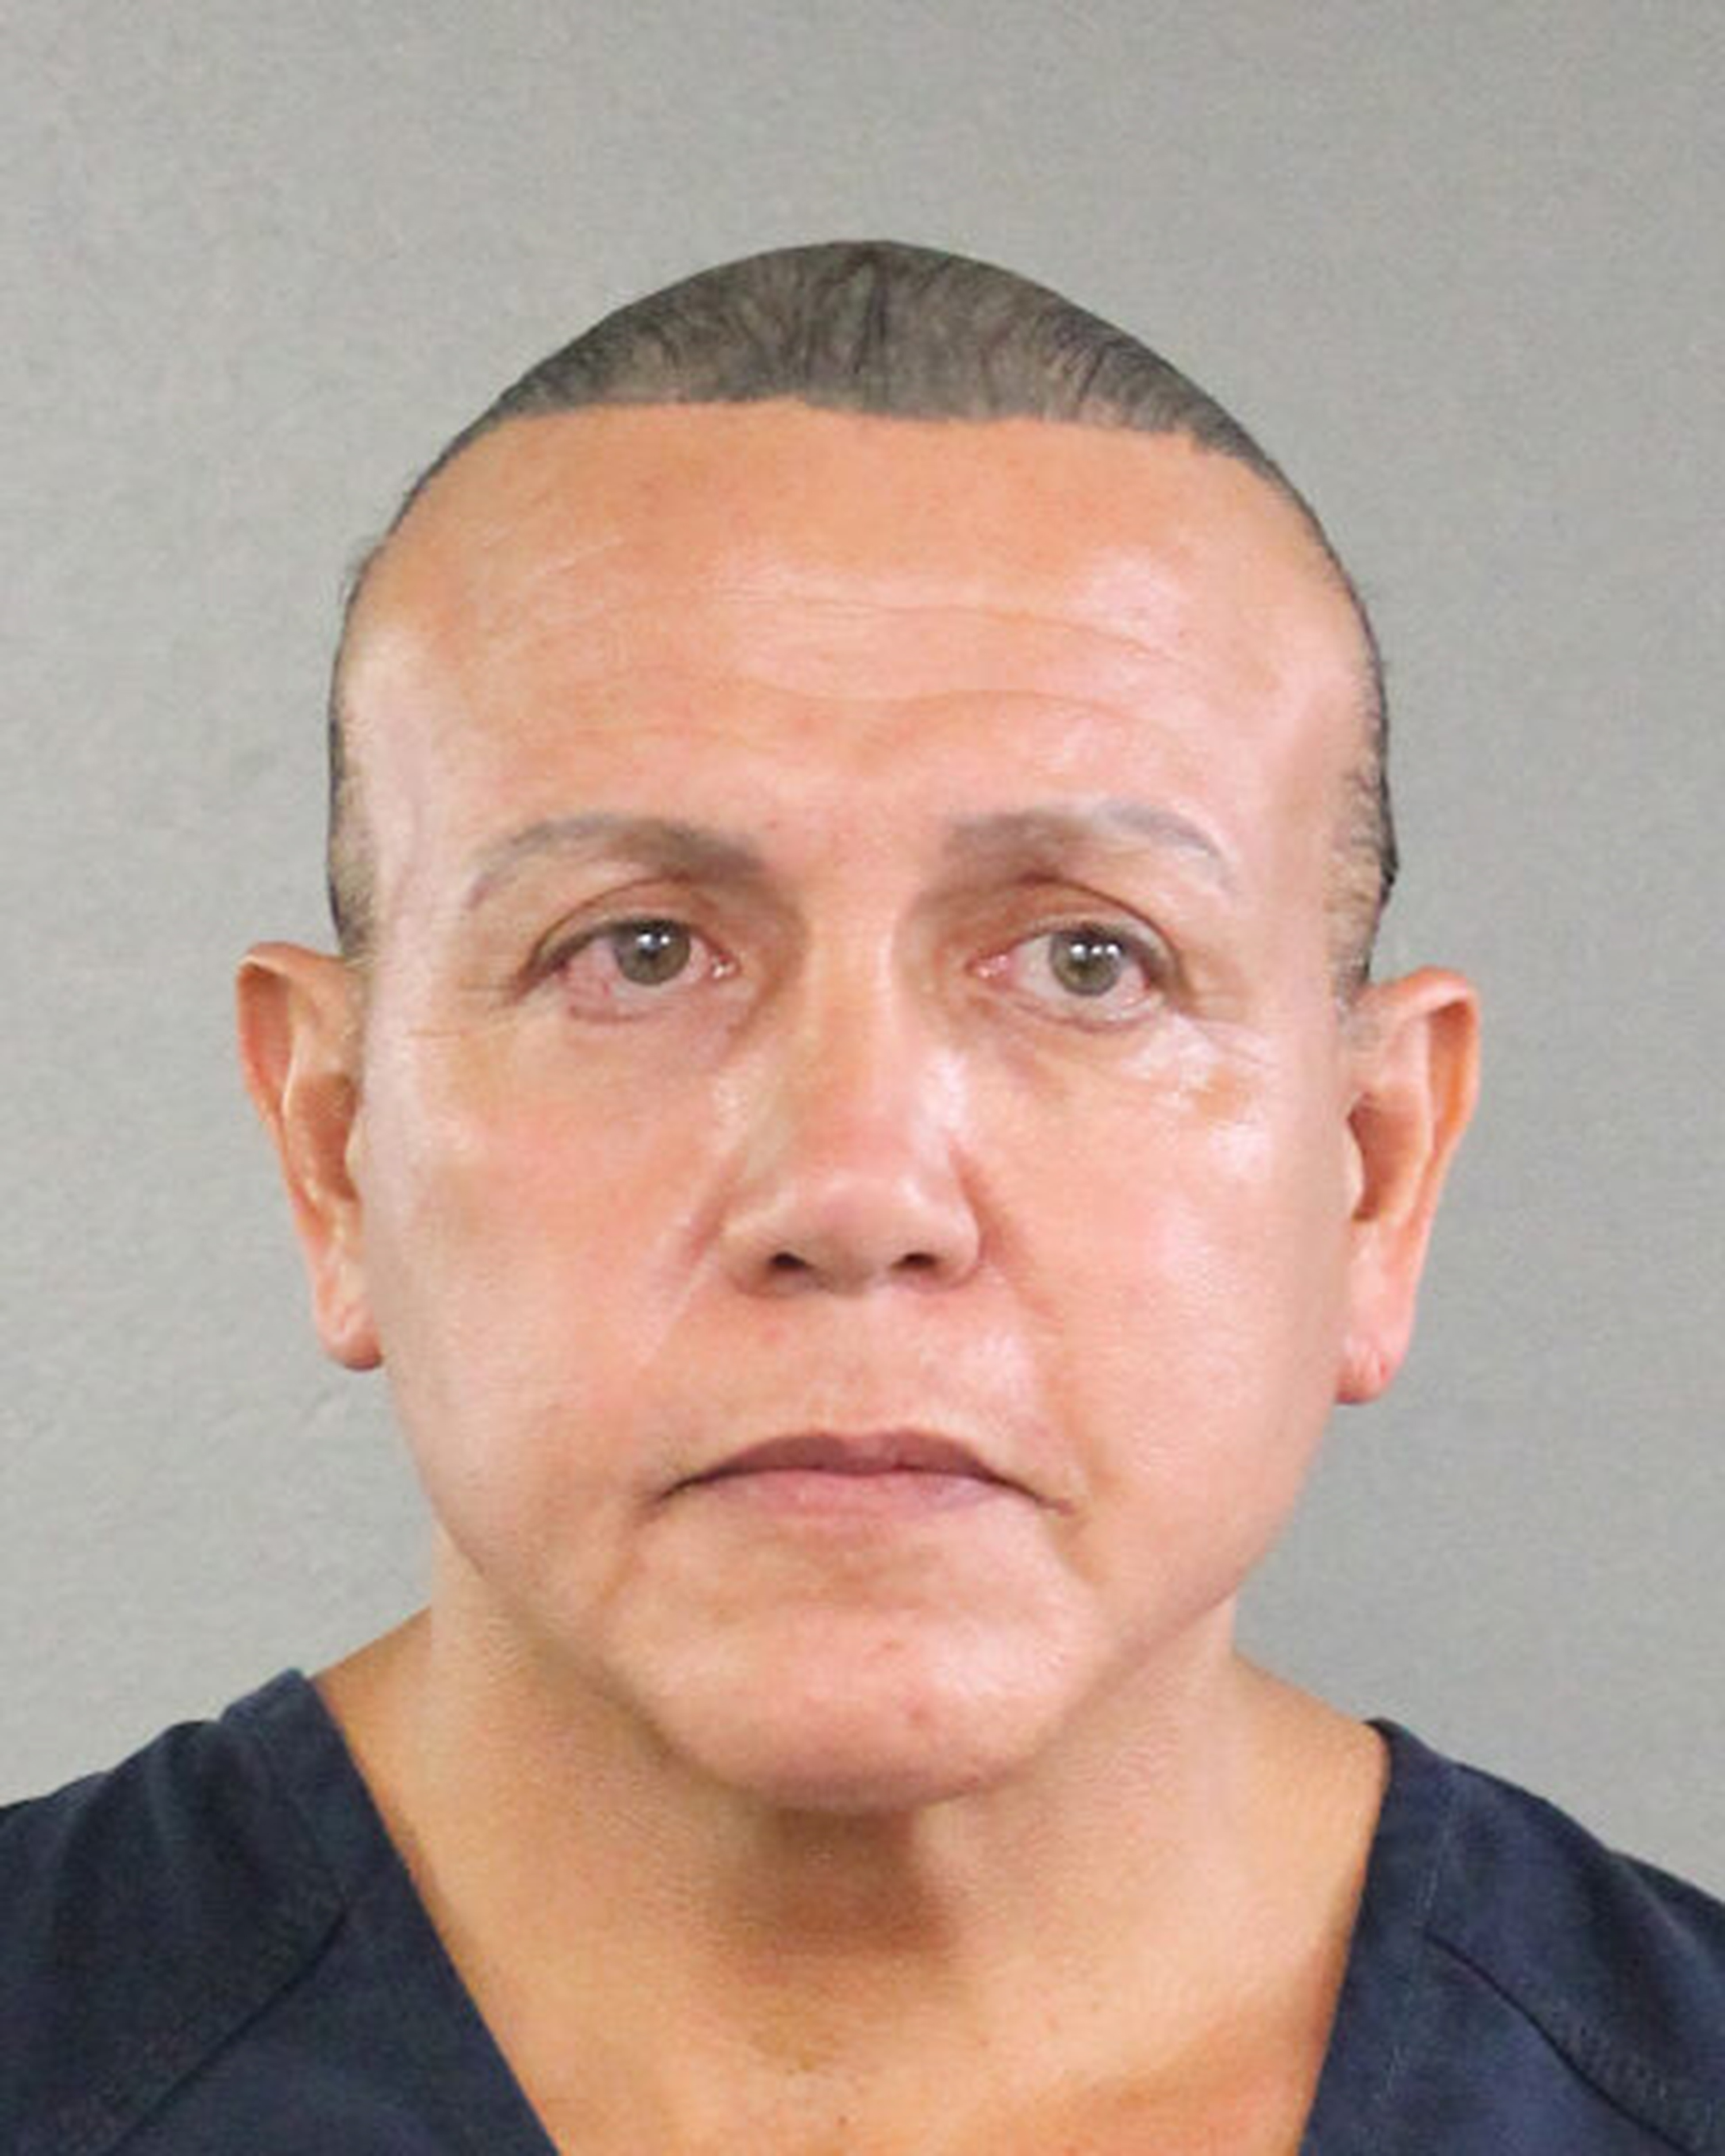 In this undated handout provided by the Broward County Sheriff's Office, Cesar Sayoc poses for a mugshot photo in Miami, Florida. Broward County Sheriff's Office via Getty Images